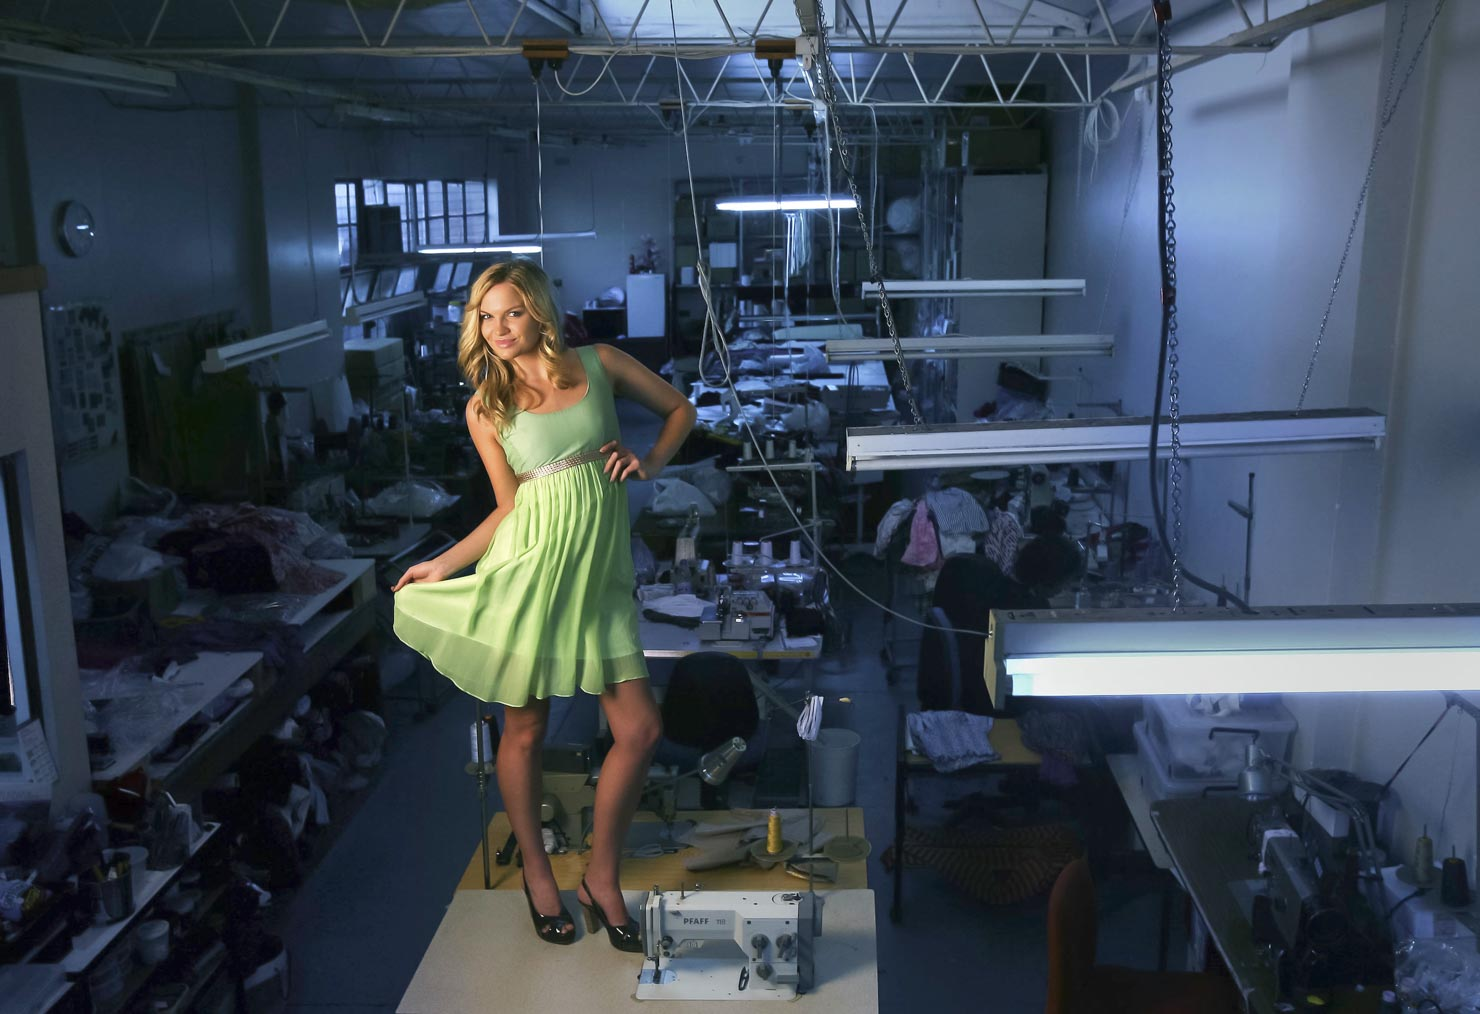 Model Ally Parry in an Amar dress in the factory where the dress was made